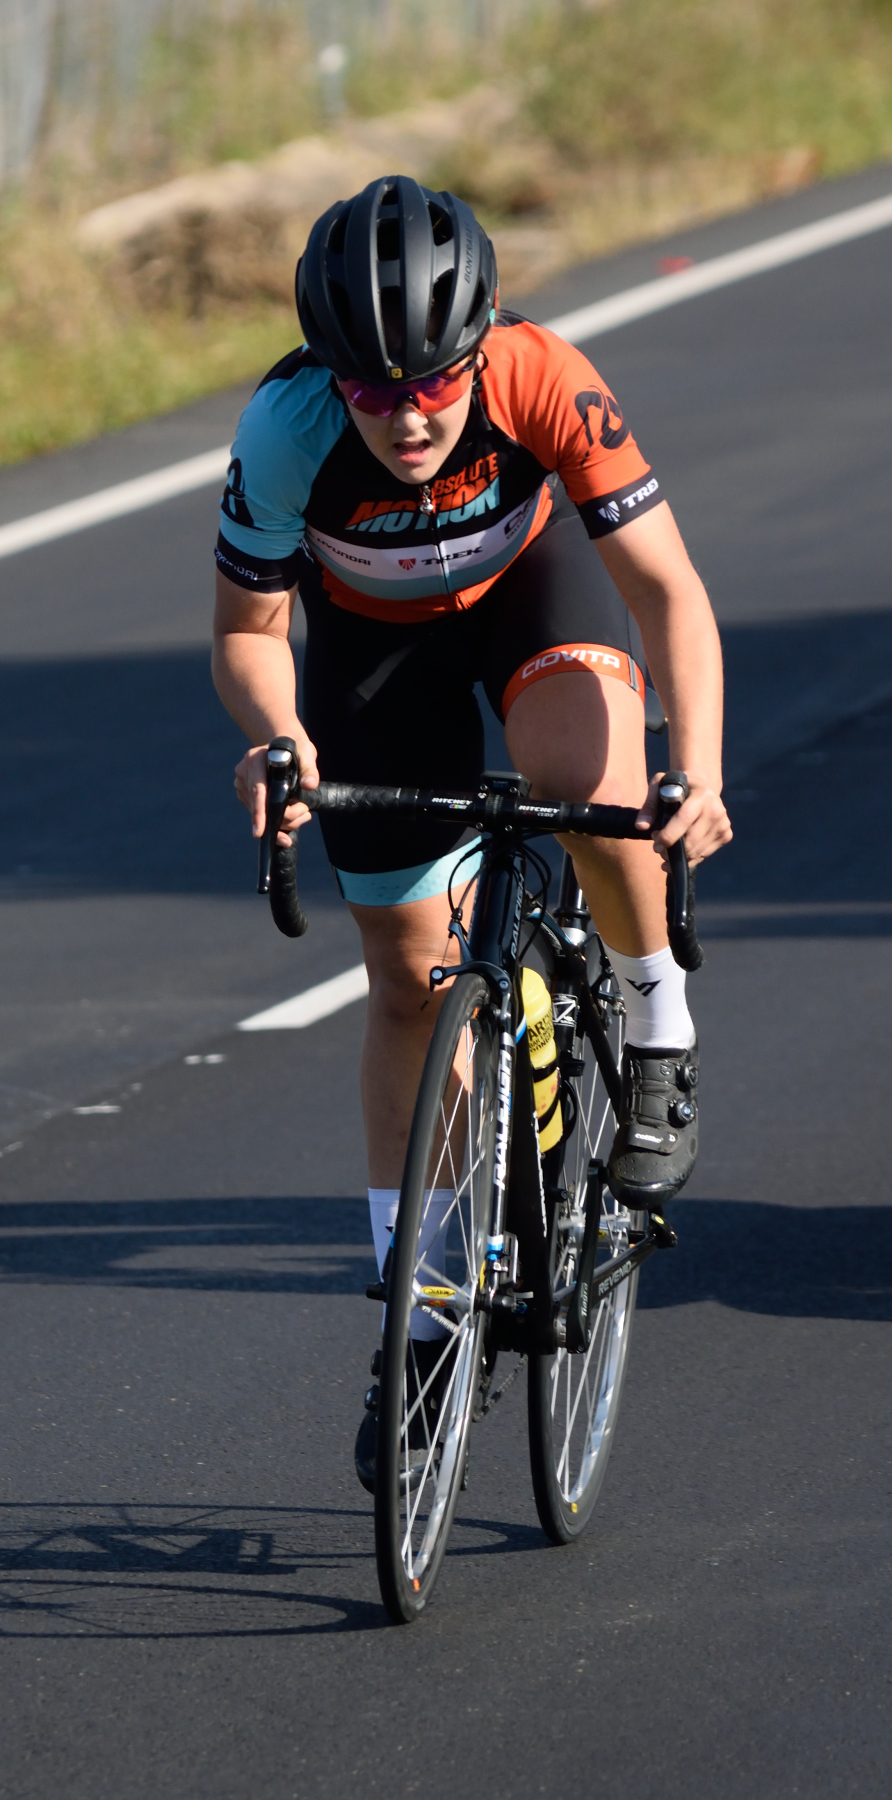 Frances Janse van Resnburg won the U19 girls road race on Sunday for his second title of the 2019 SA Youth Road Cycling National Championships.